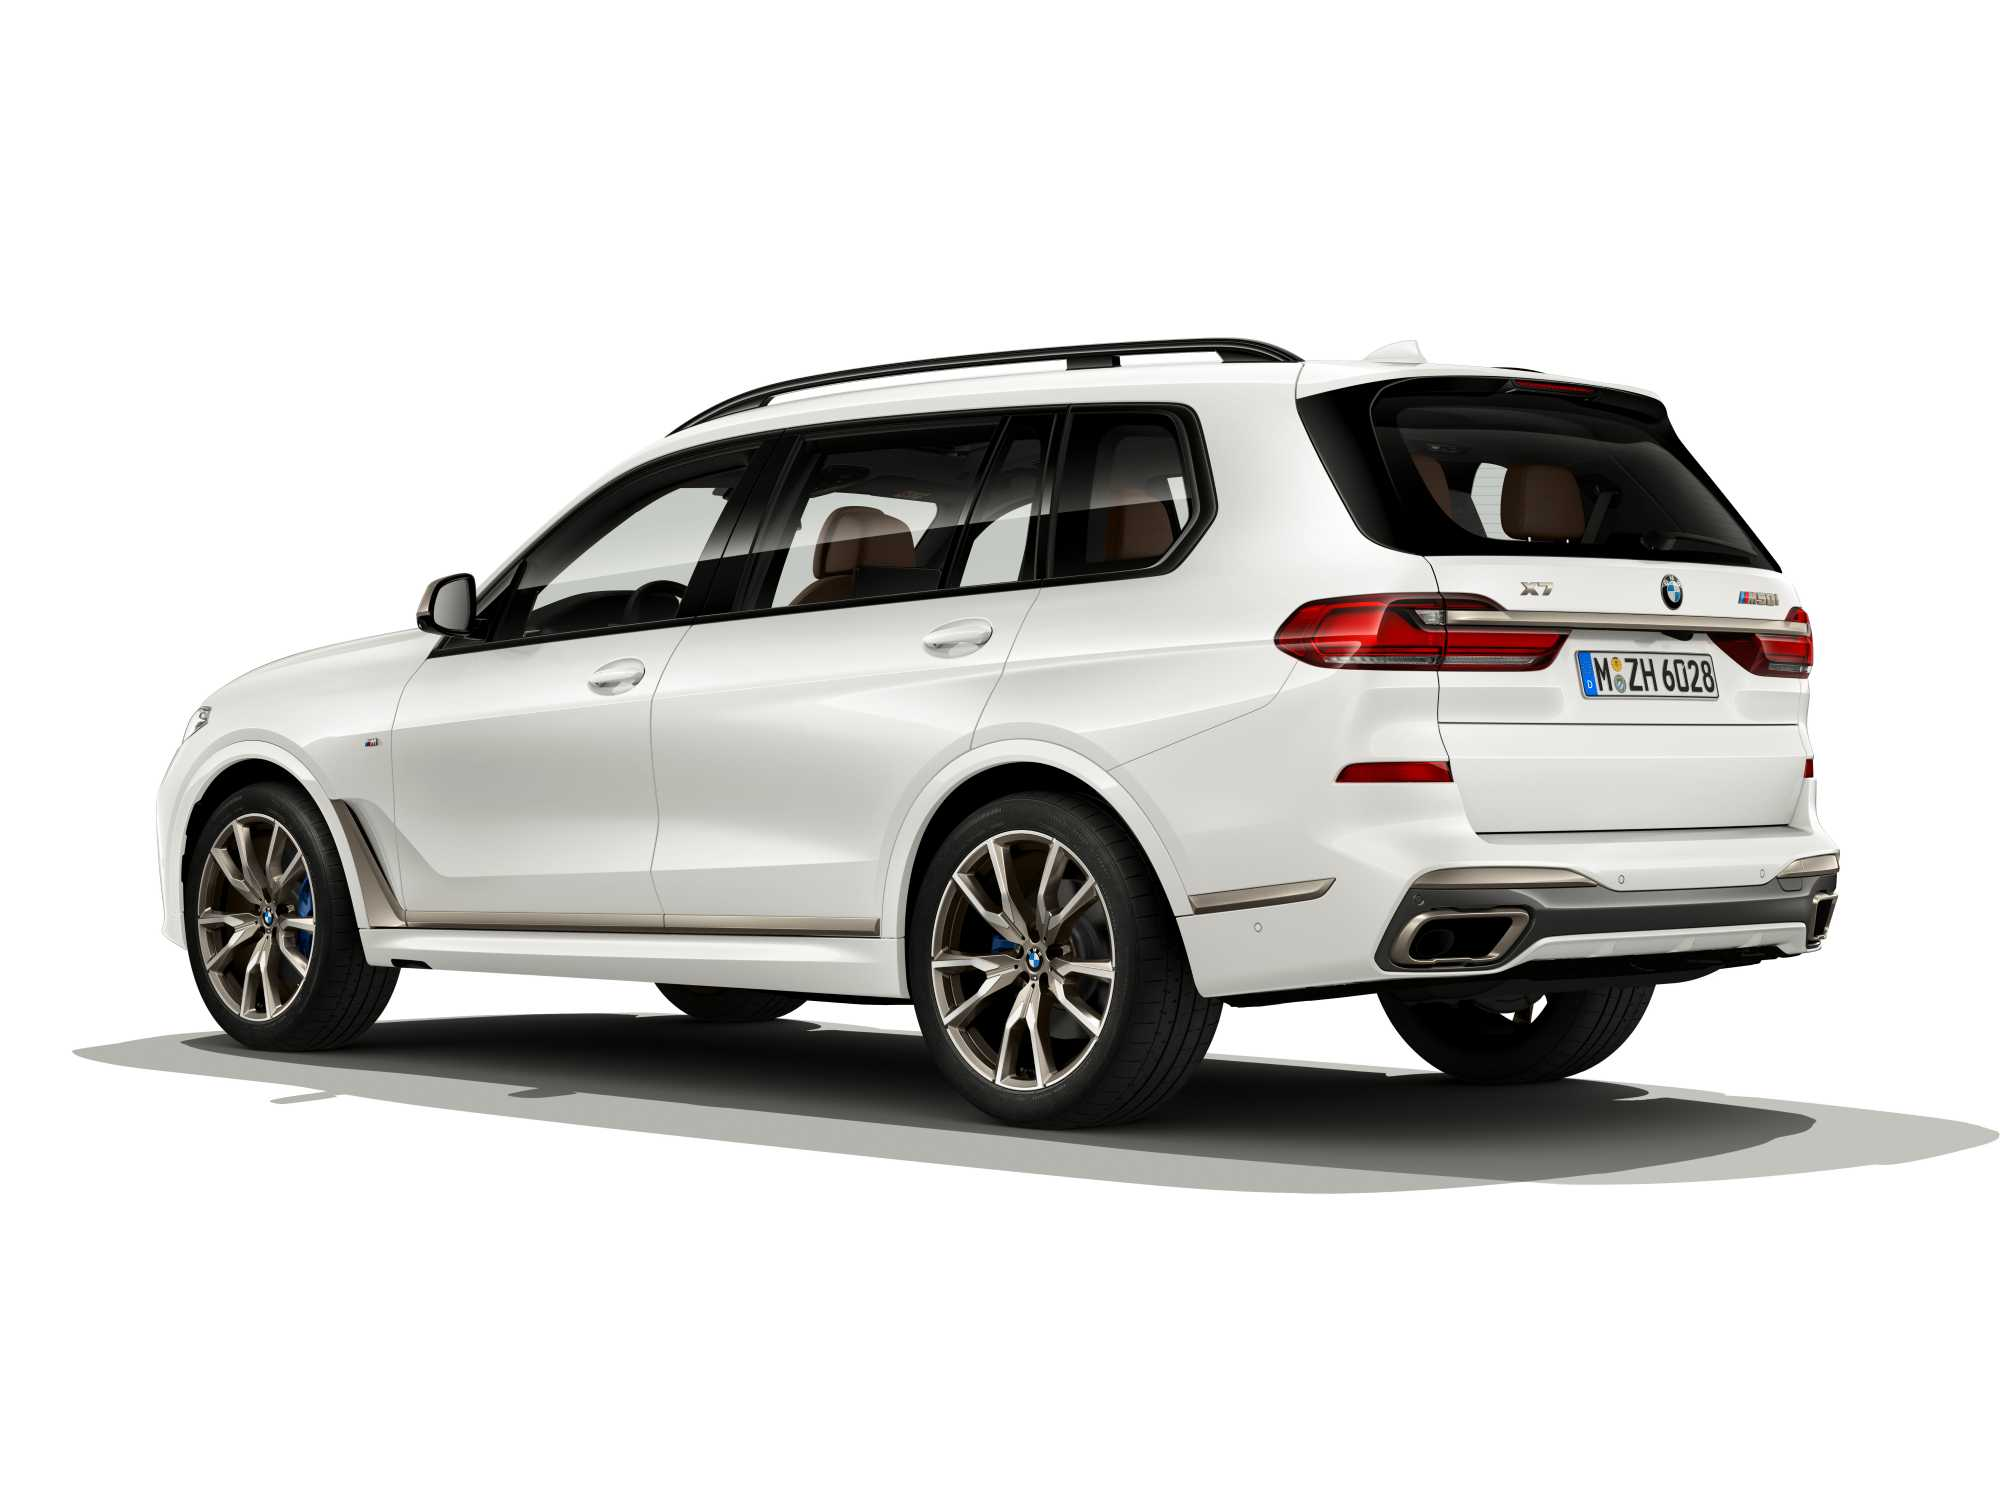 The New 2020 Bmw X5 M50i And Bmw X7 M50i Sports Activity Vehicles